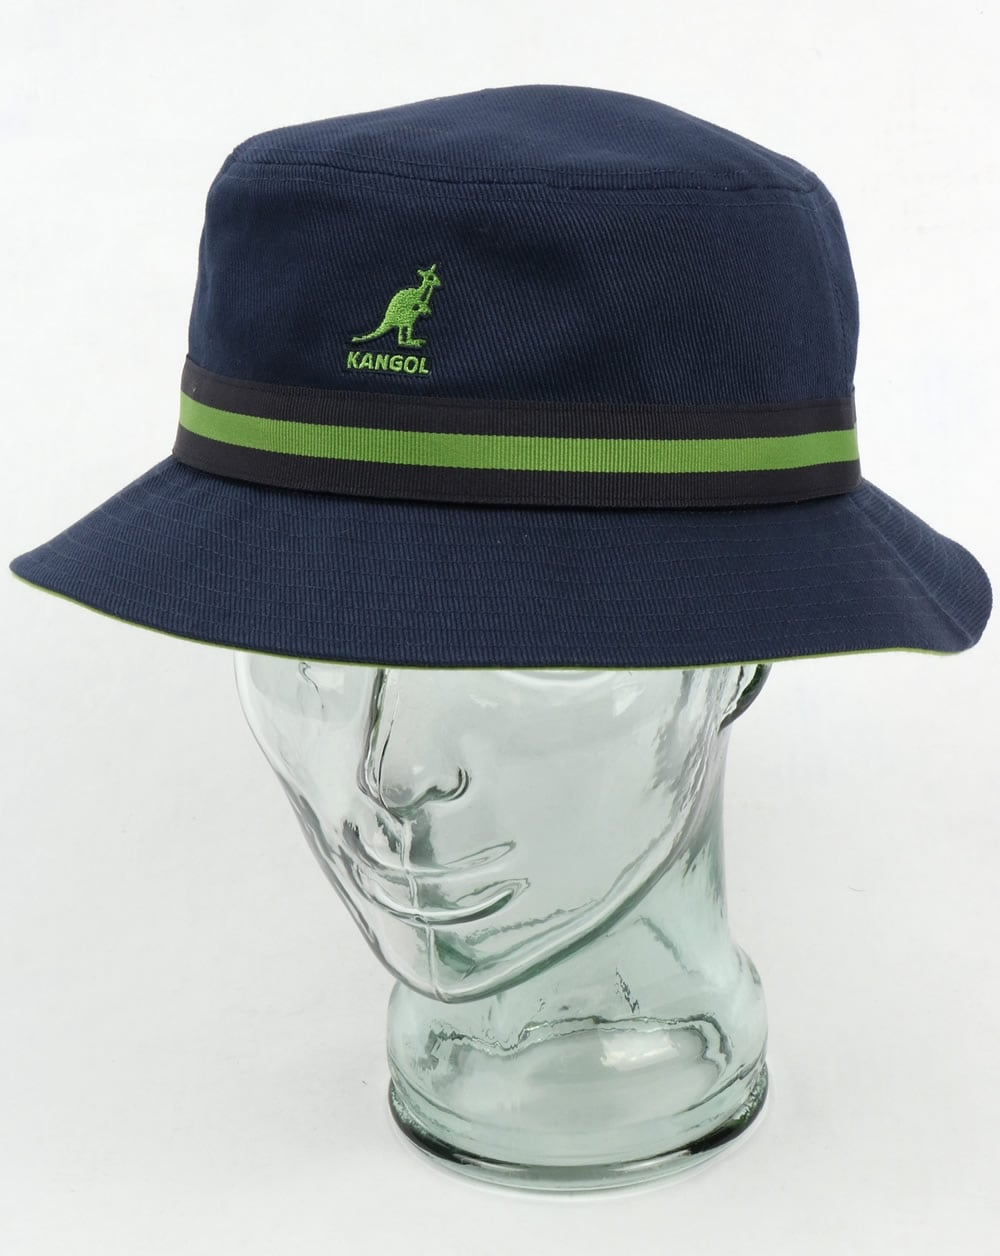 Kangol Kangol Stripe Lahinch Bucket Hat Navy 3e7df5339b00